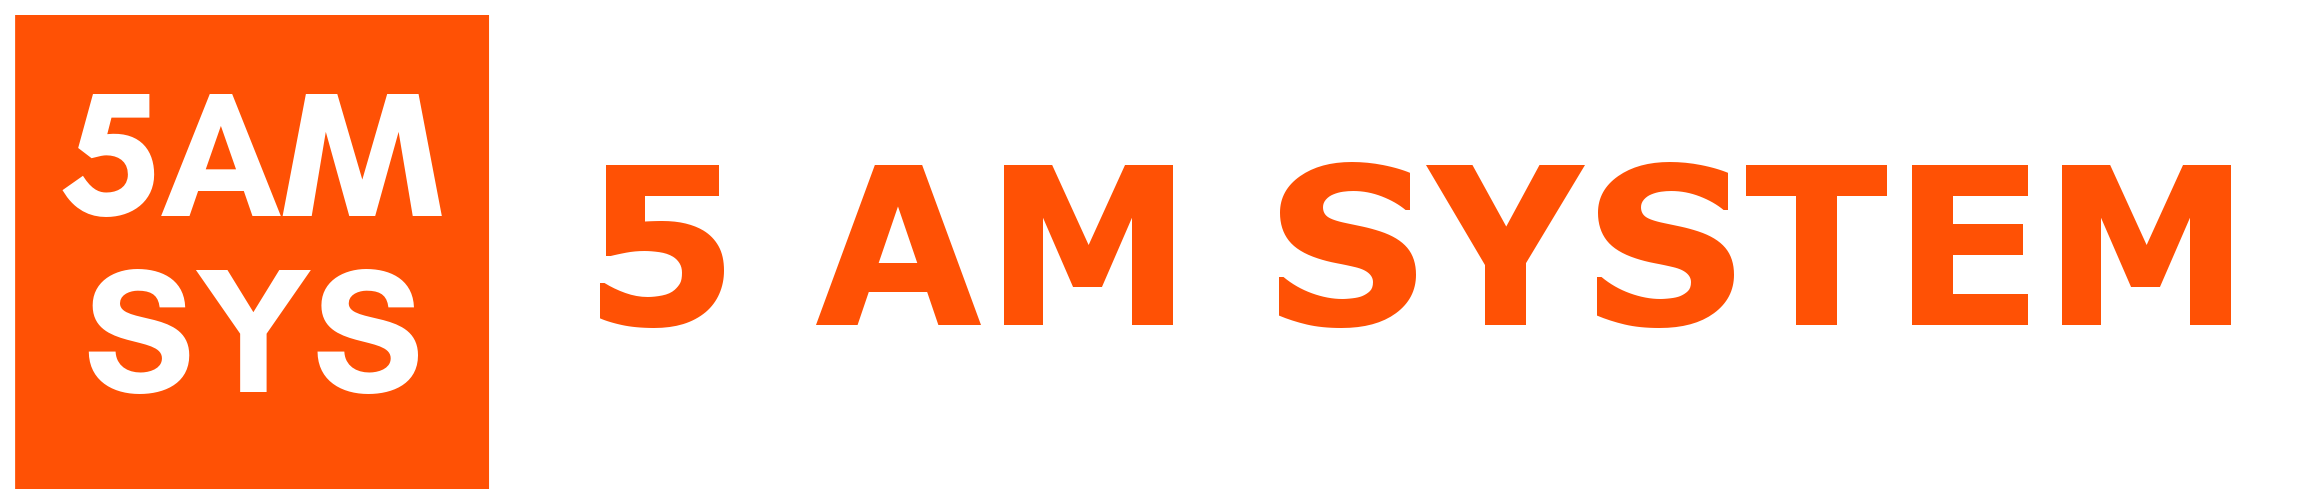 5 AM SYSTEM